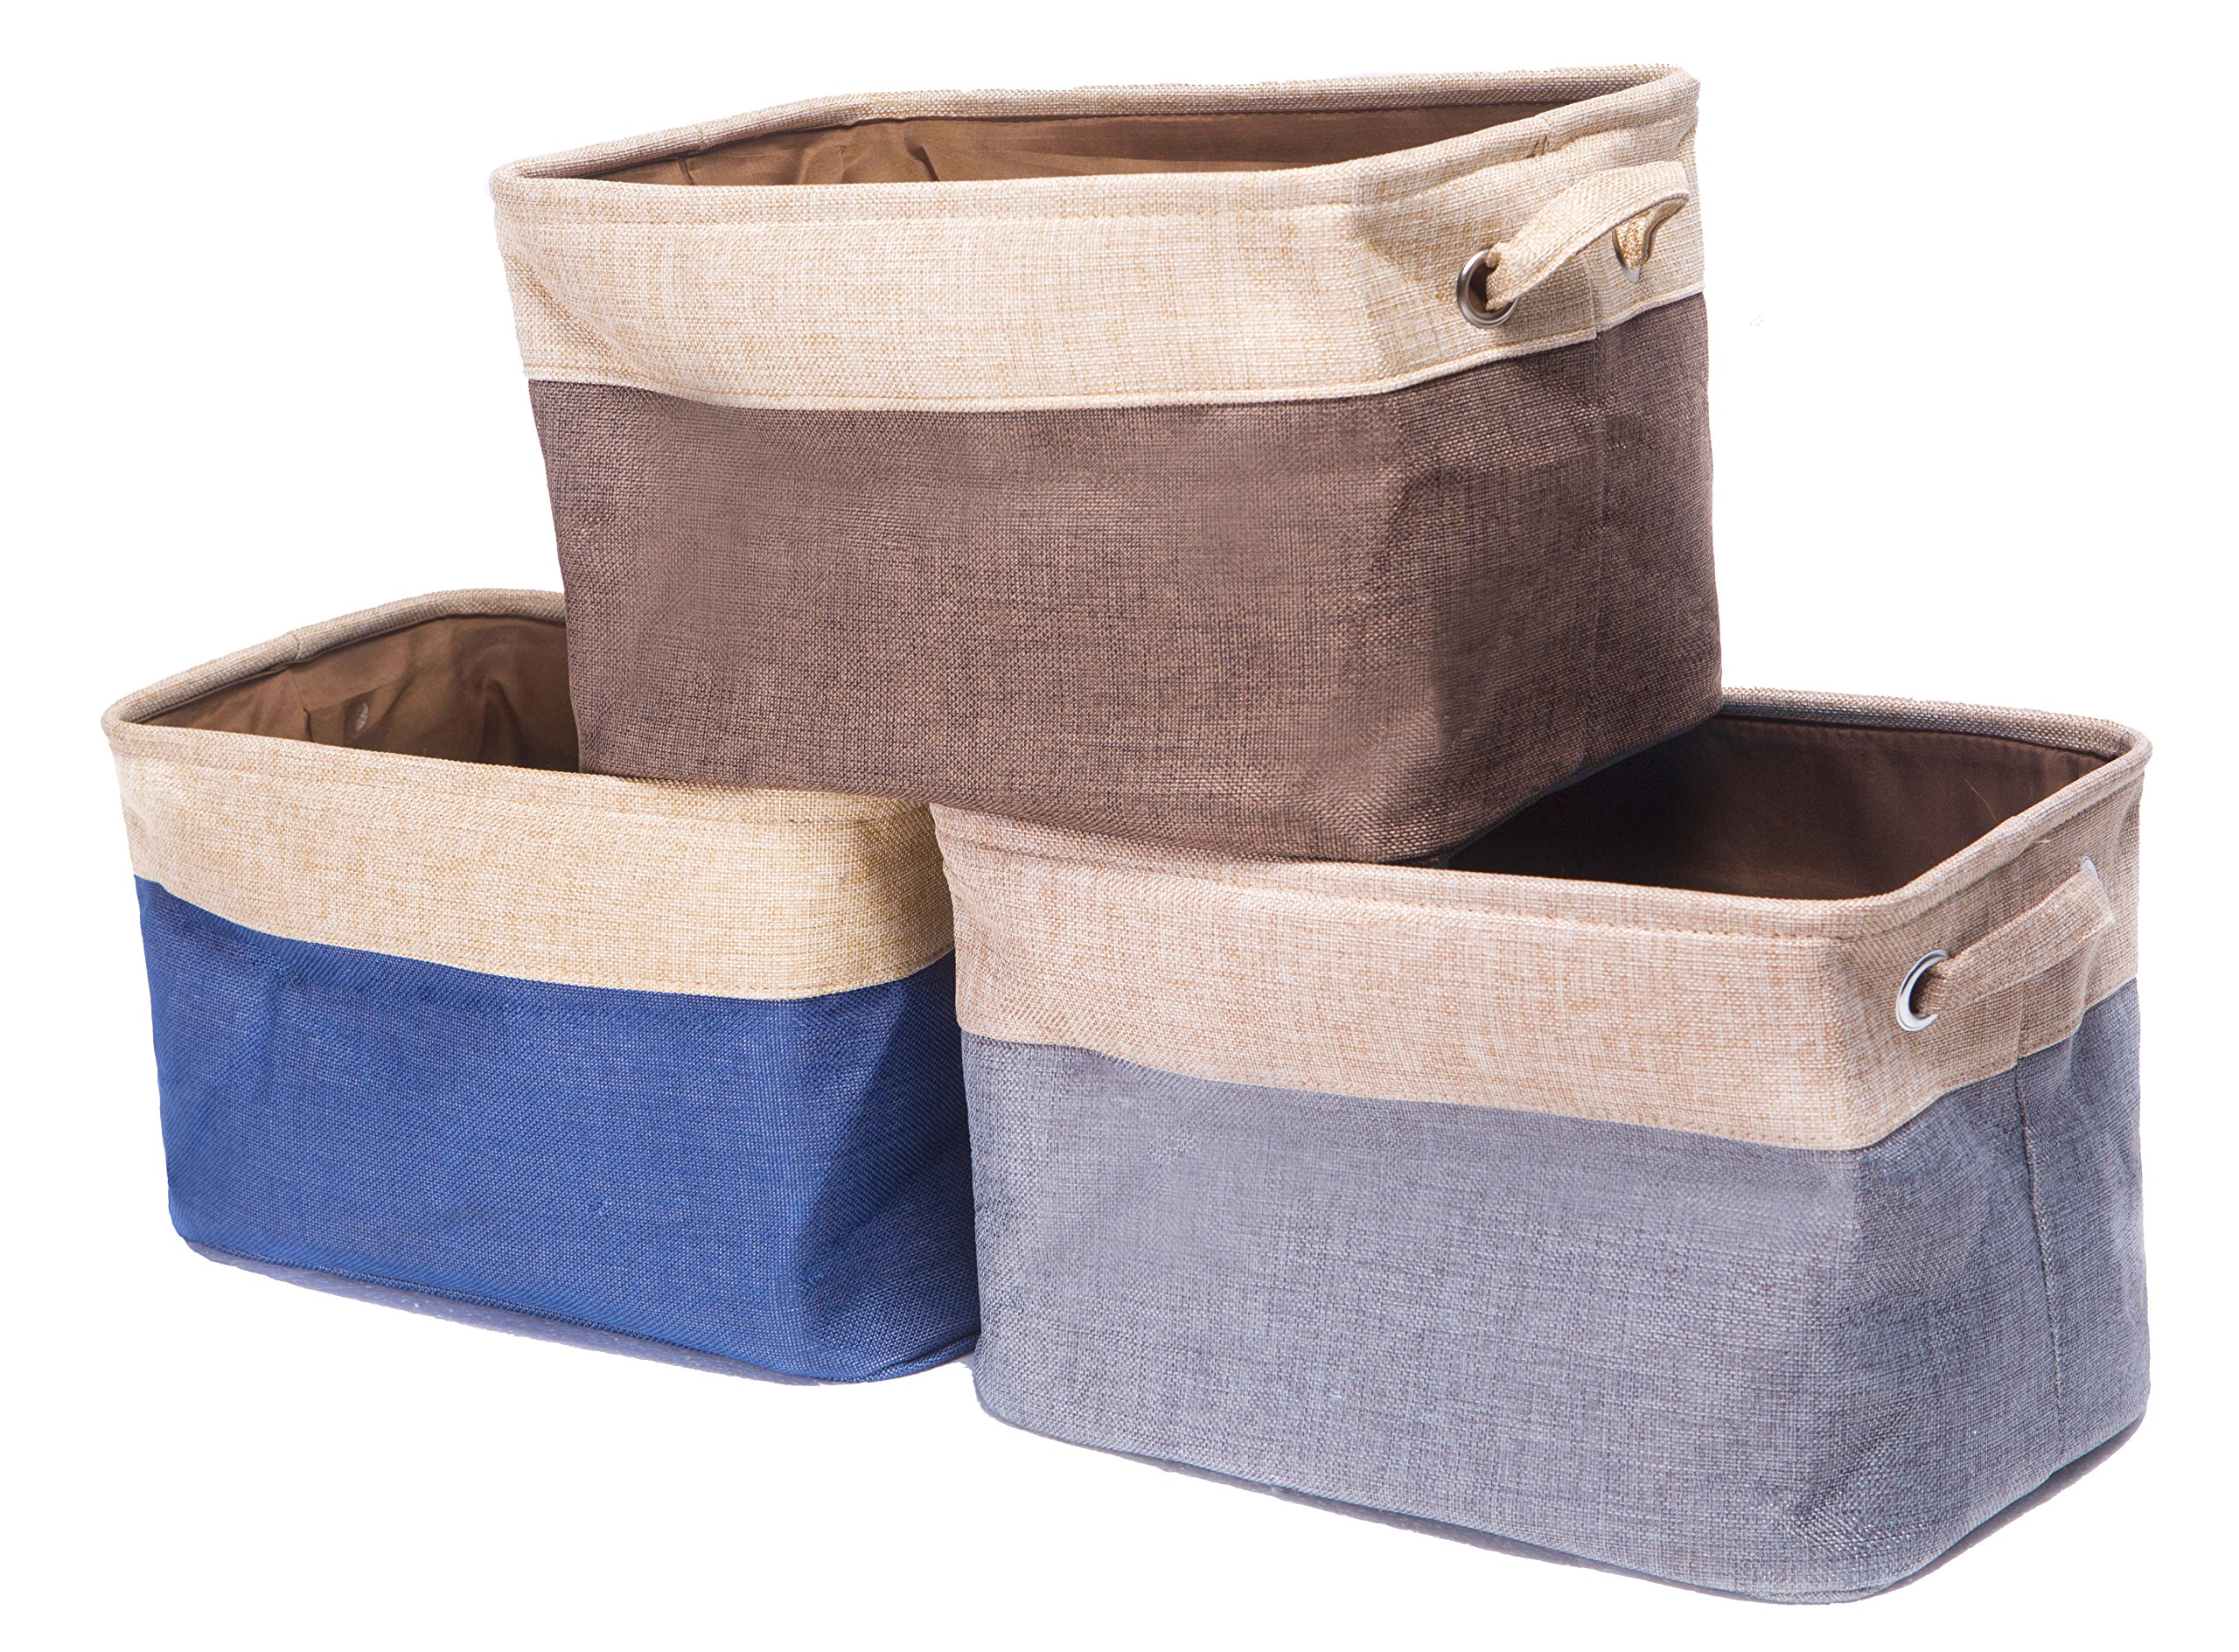 "Amelitory Storage Bins Foldable Basket Fabric Cube Collapsible Organizer Cotton Linen Set of 3 (Multi) - Set of 3 storage cubes for organizing home and office clutter 14.5"" x 10"" x 8.5"" Large capacity,providing you a good space-saving solution Durable and foldable, 2 sturdy handle with metal eyelets for grabbing or pulling from shelves, easy to carry or store - living-room-decor, living-room, baskets-storage - A1LLE%2Bwl5uL -"